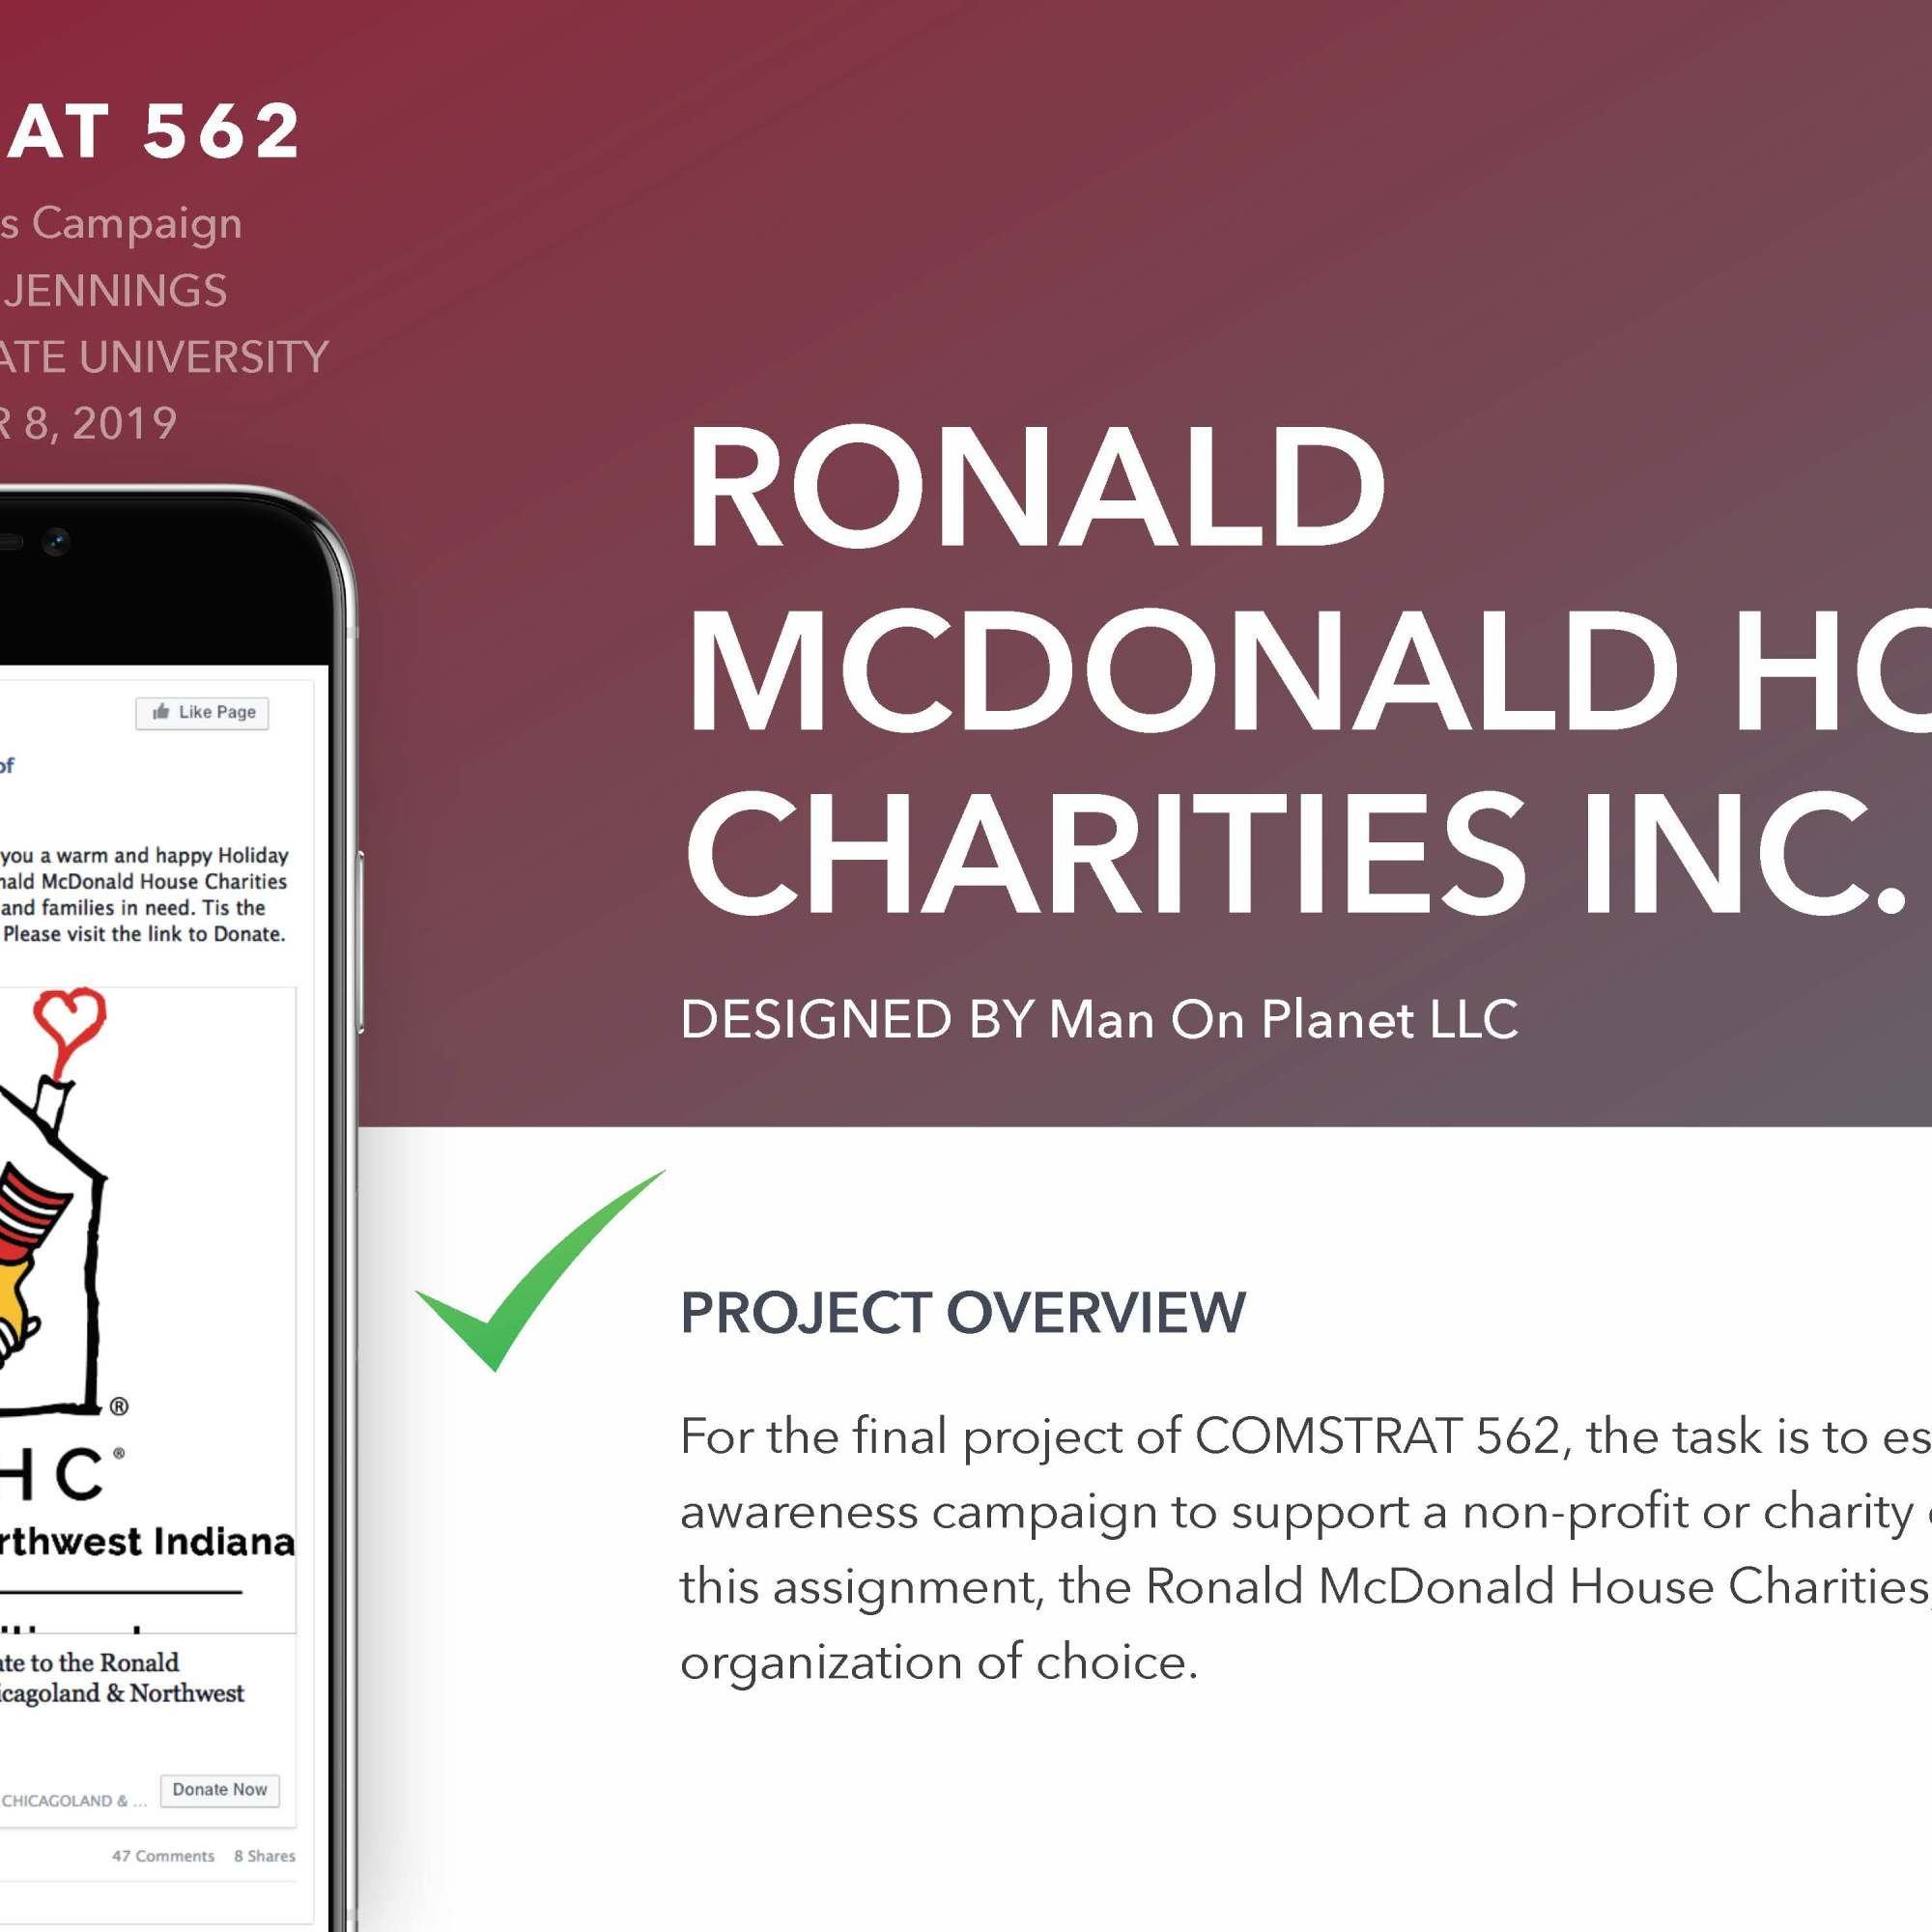 Ronald McDonald House Charities Inc. Campaign Proposal Cover